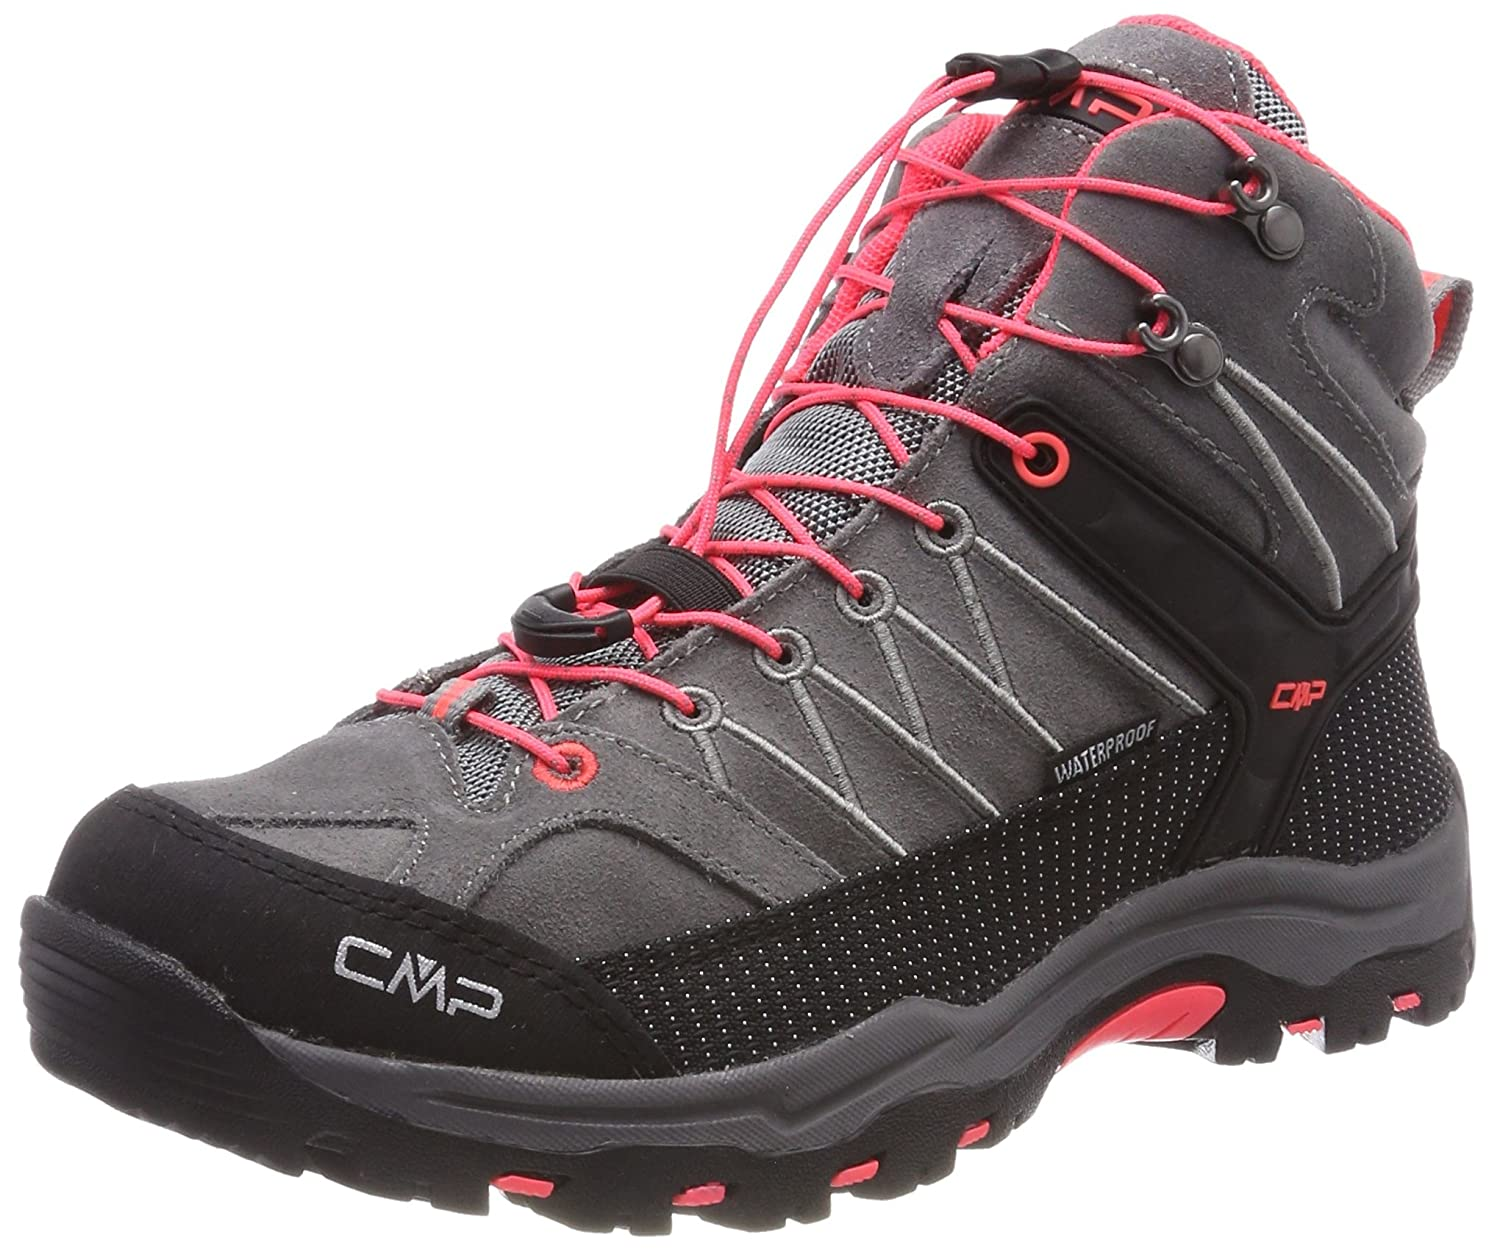 CMP Rigel Mid WP, Zapatos de High Rise Senderismo Unisex Adulto 41 EU|Gris (Grey-red Fluo)